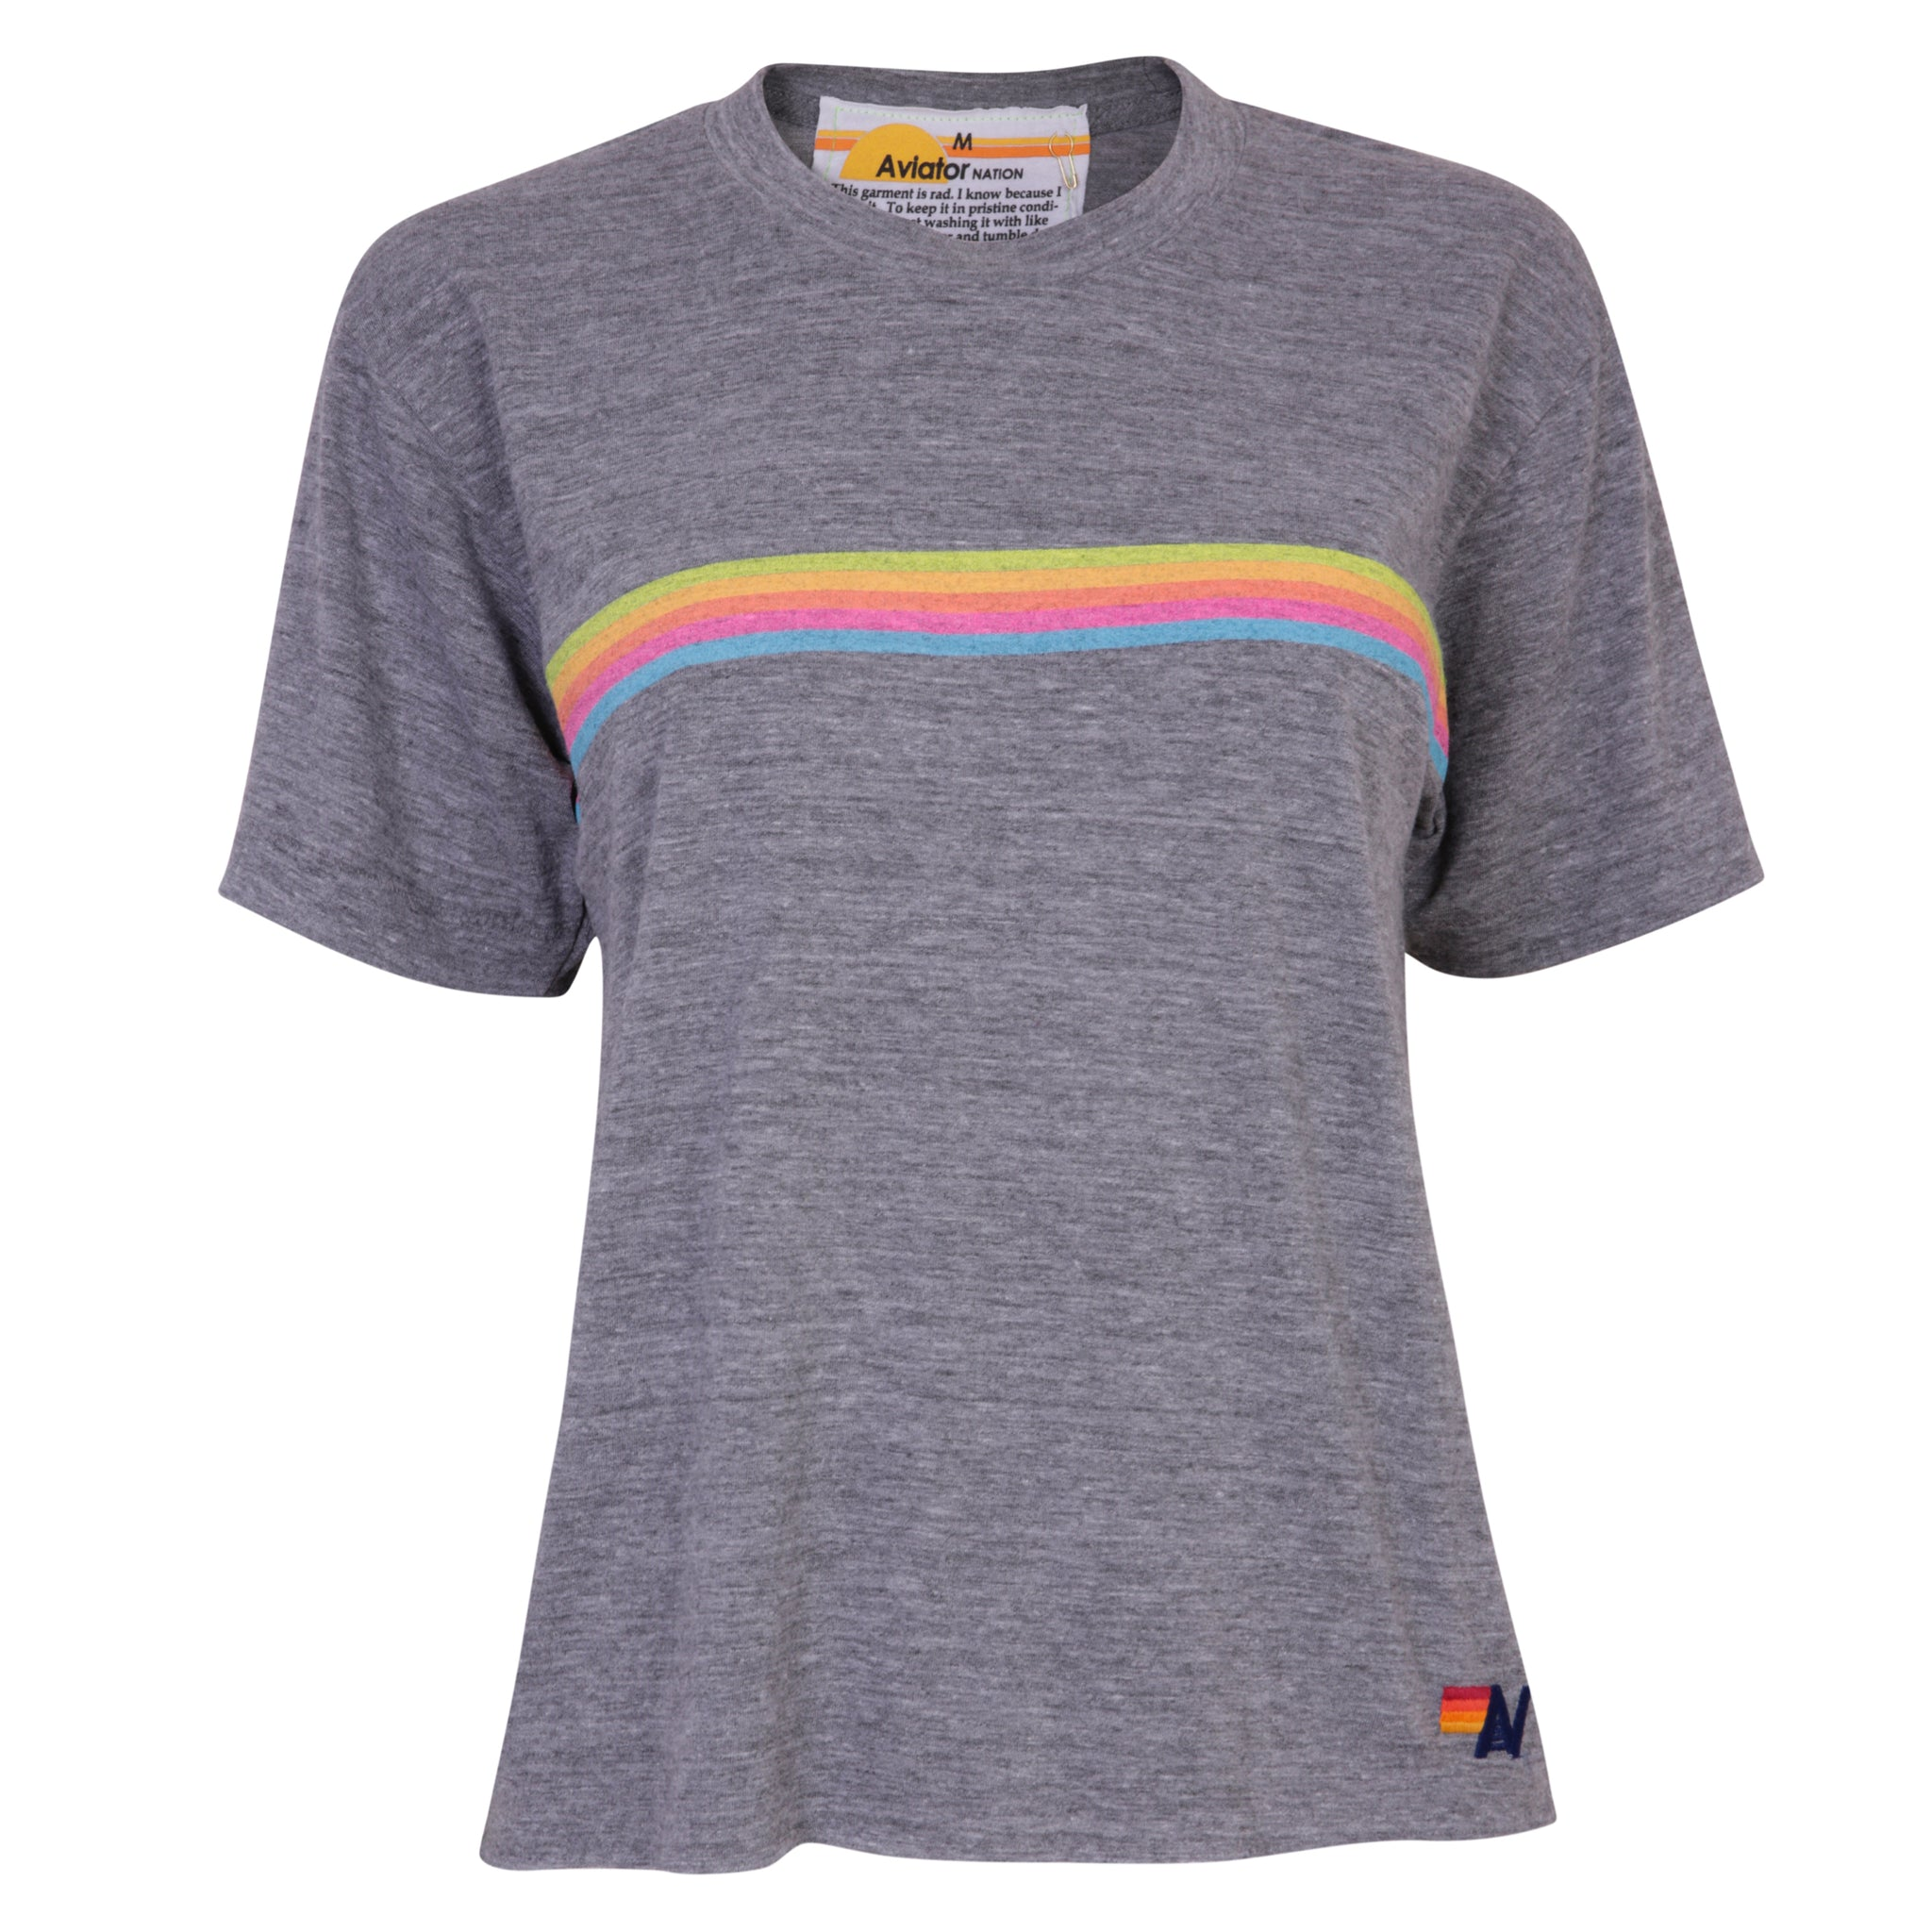 Sunset Grey T